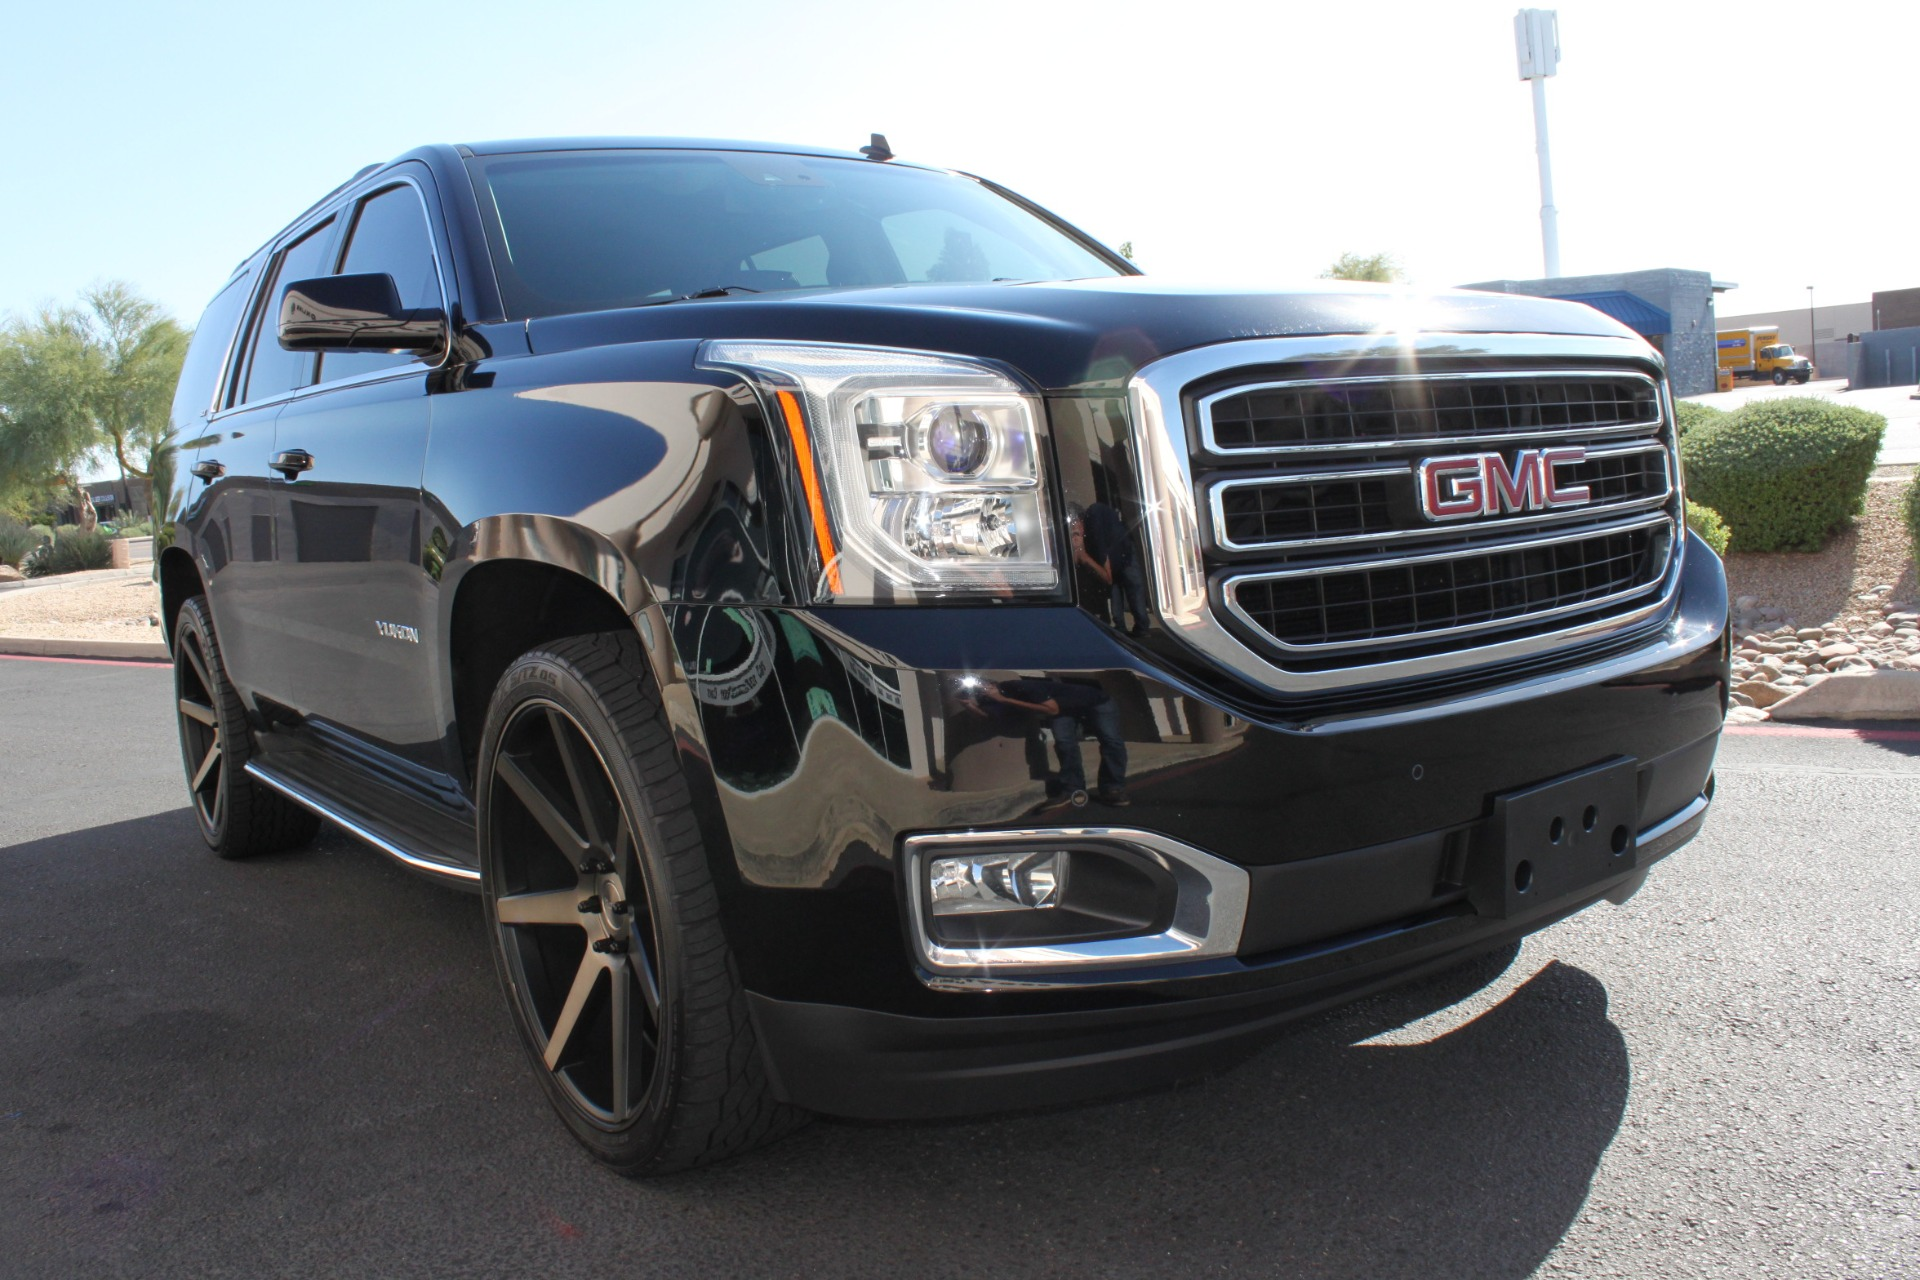 Used-2015-GMC-Yukon-SLT-Mercedes-Benz